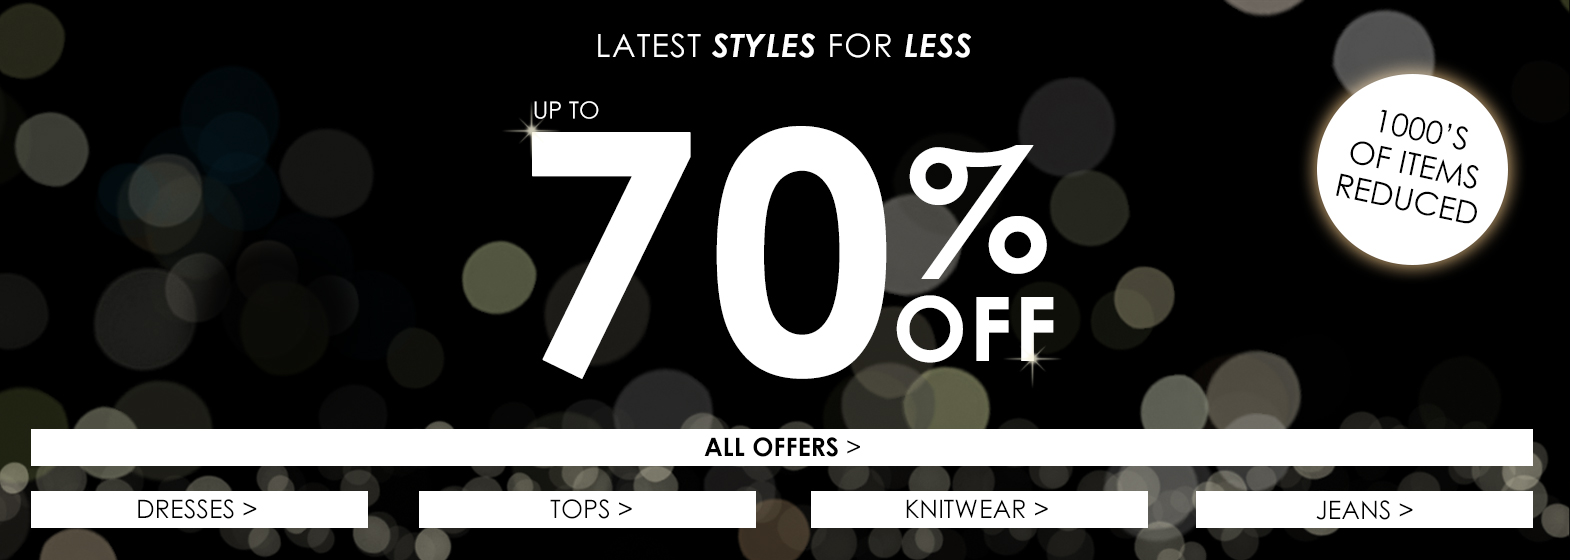 Shop All Black Friday Offers >